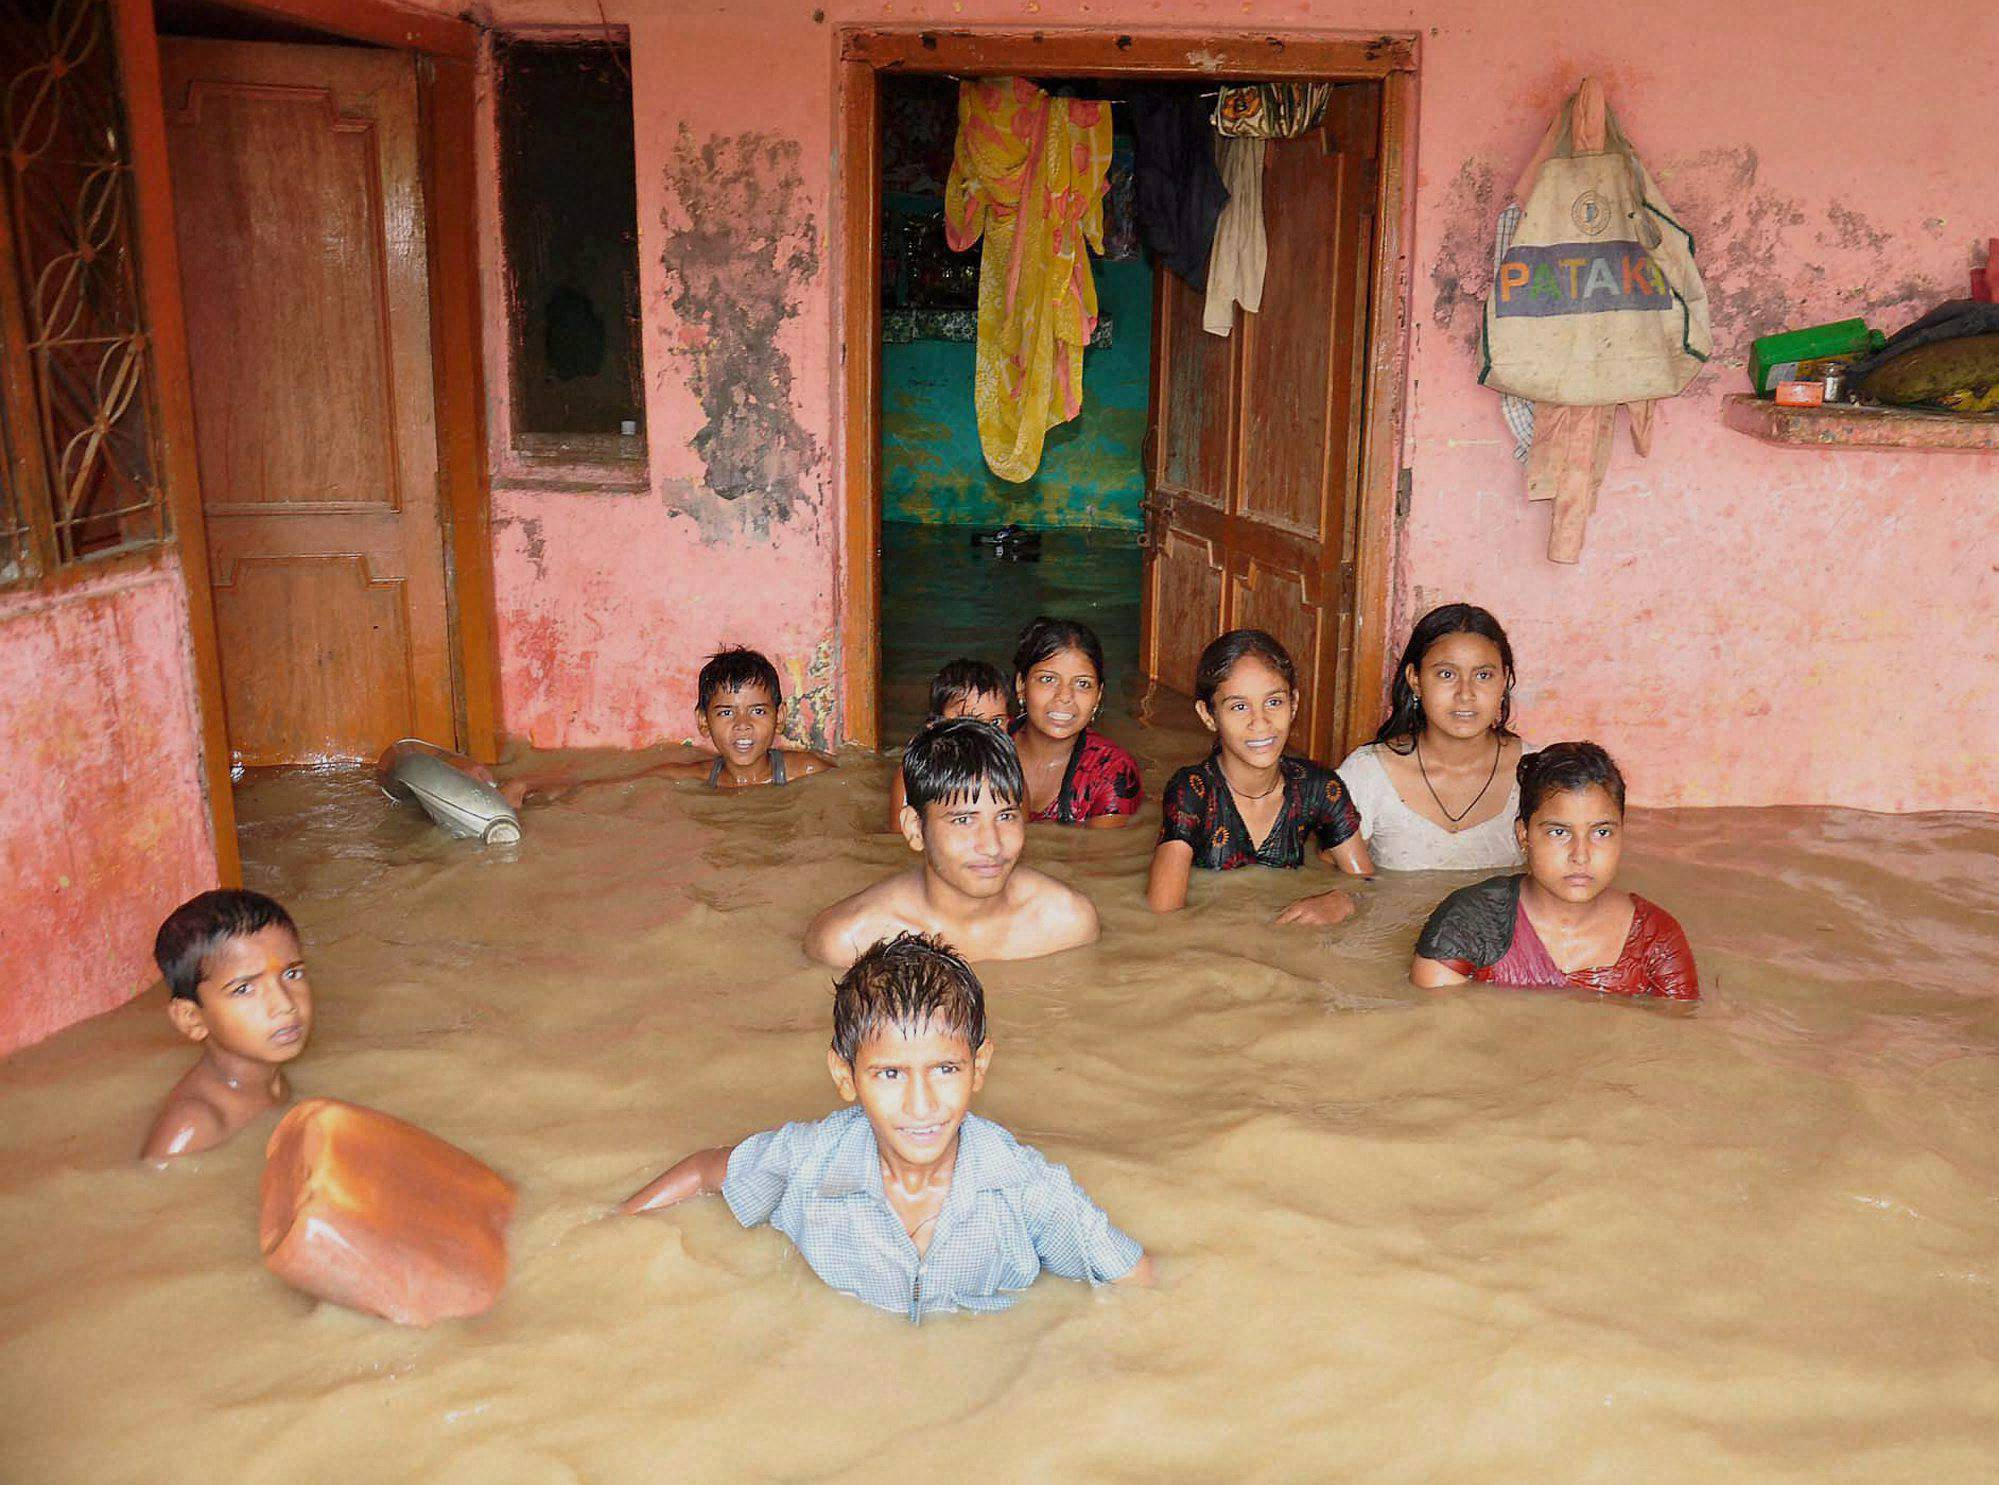 Children, locality, flooded, Ramganga River, Moradabad district